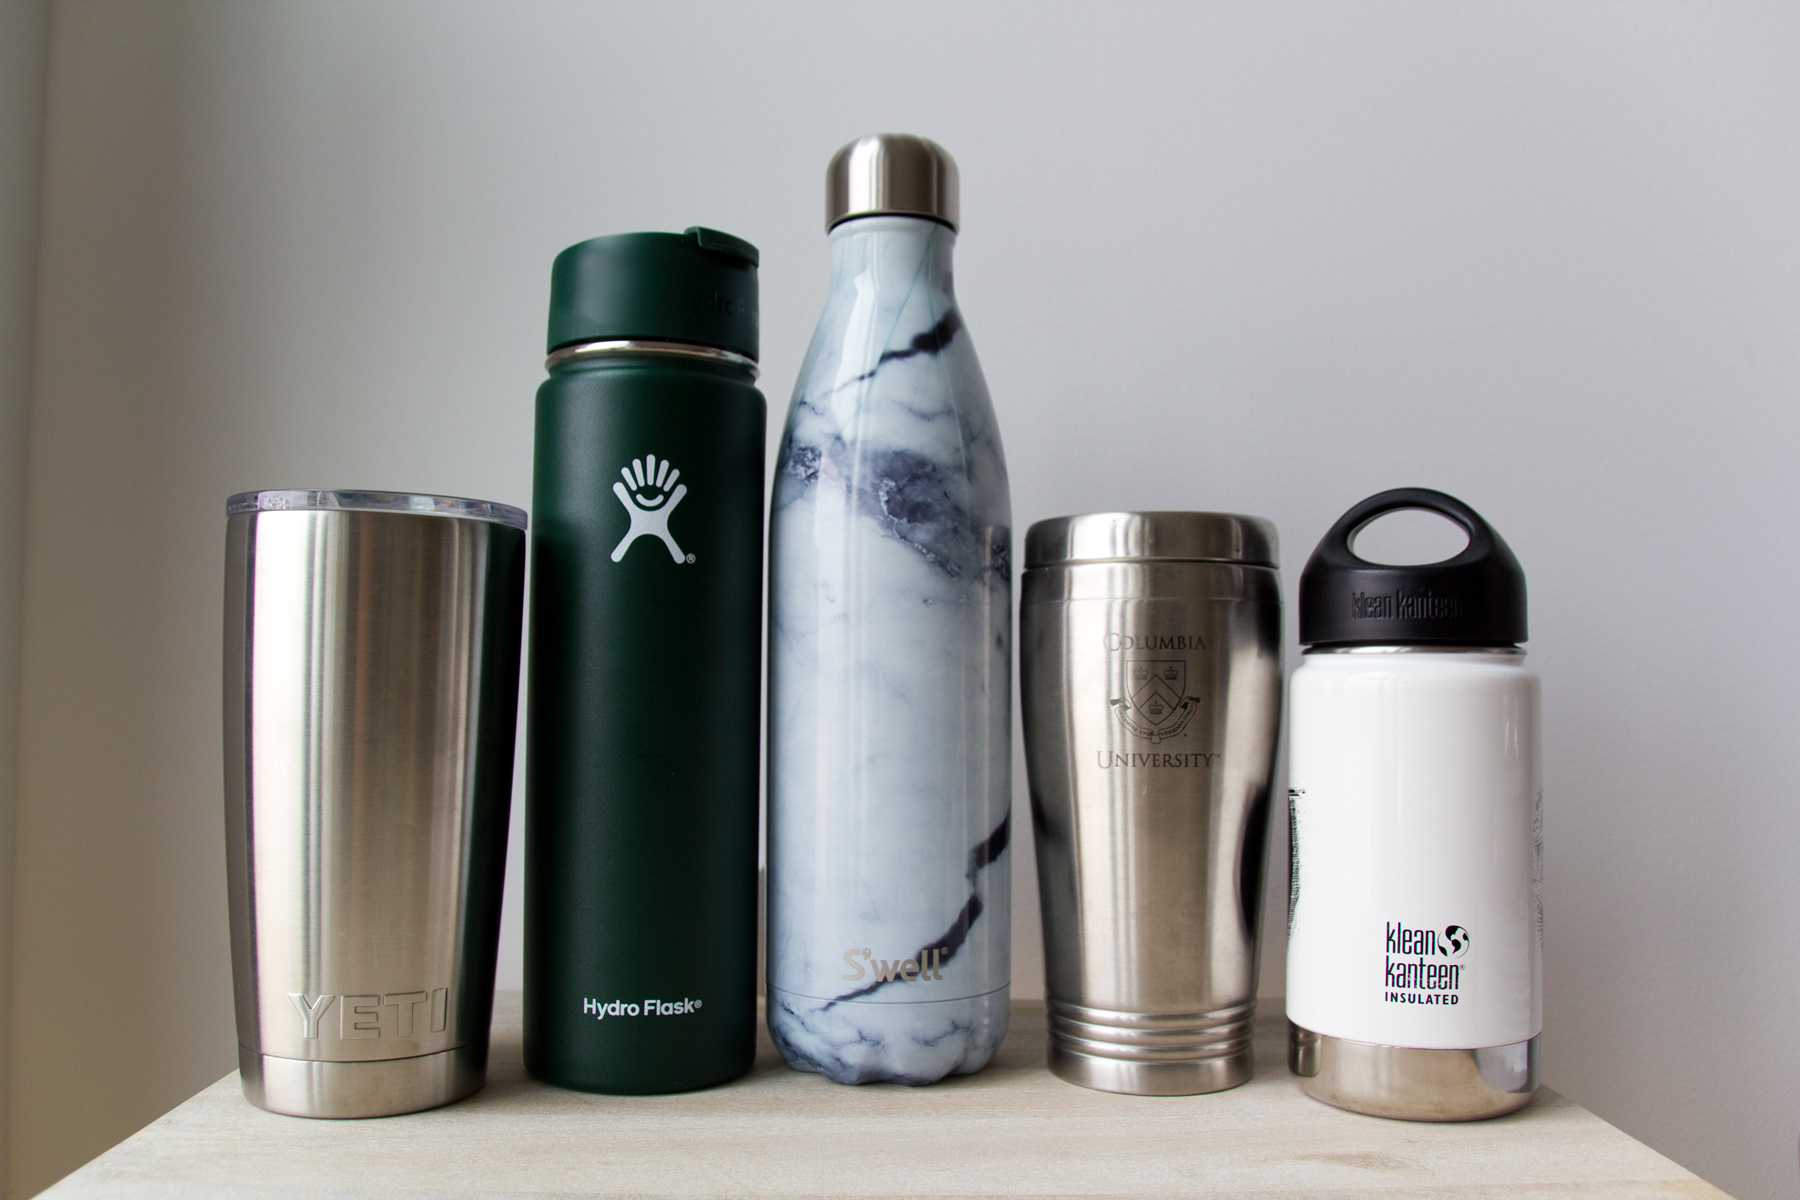 YETI vs Hydro Flask vs S'well vs Klean Kanteen